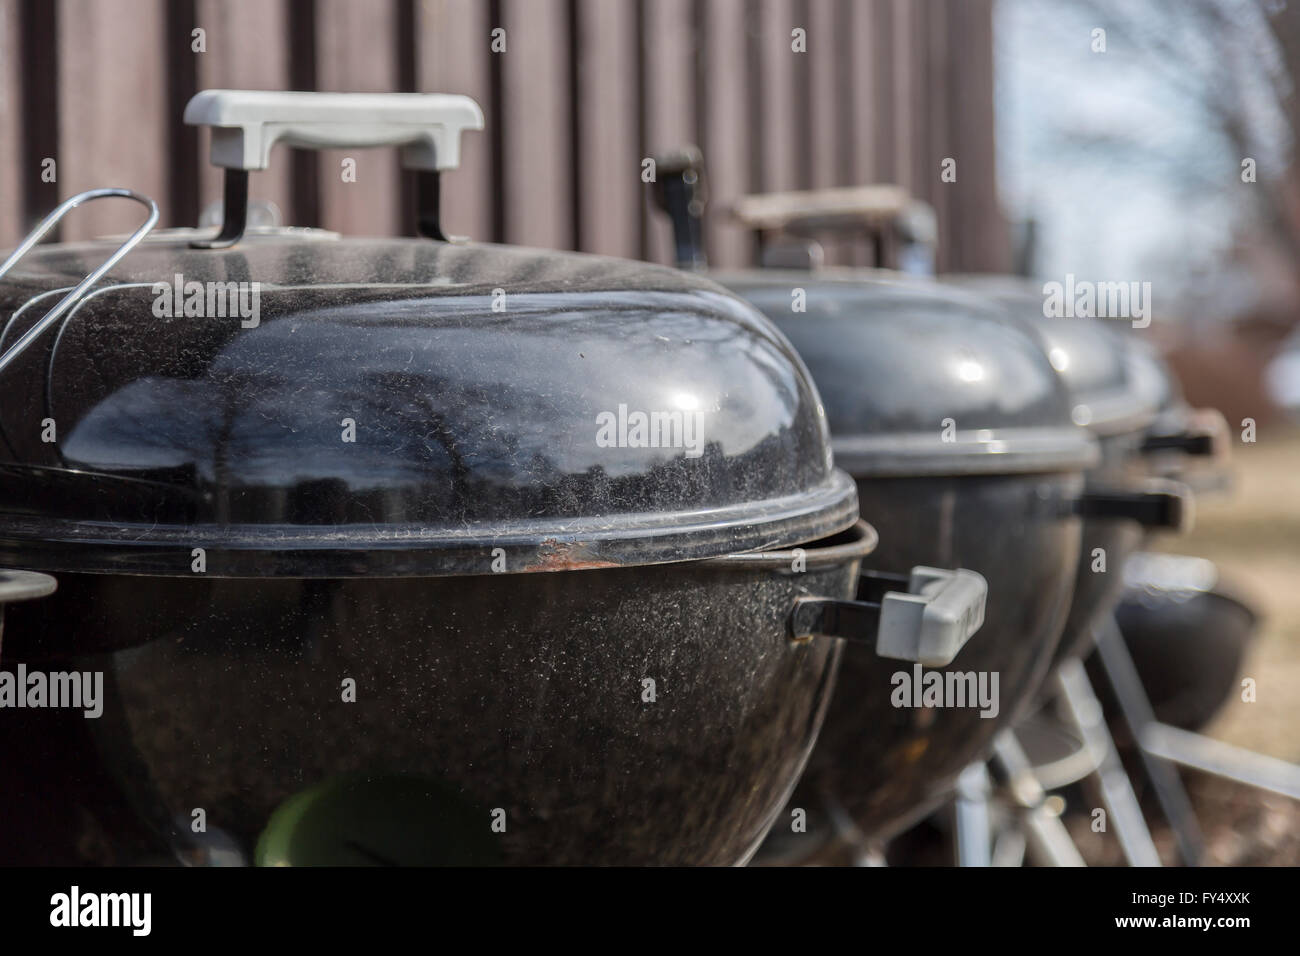 Black Barbecue Grills in a Row - Stock Image